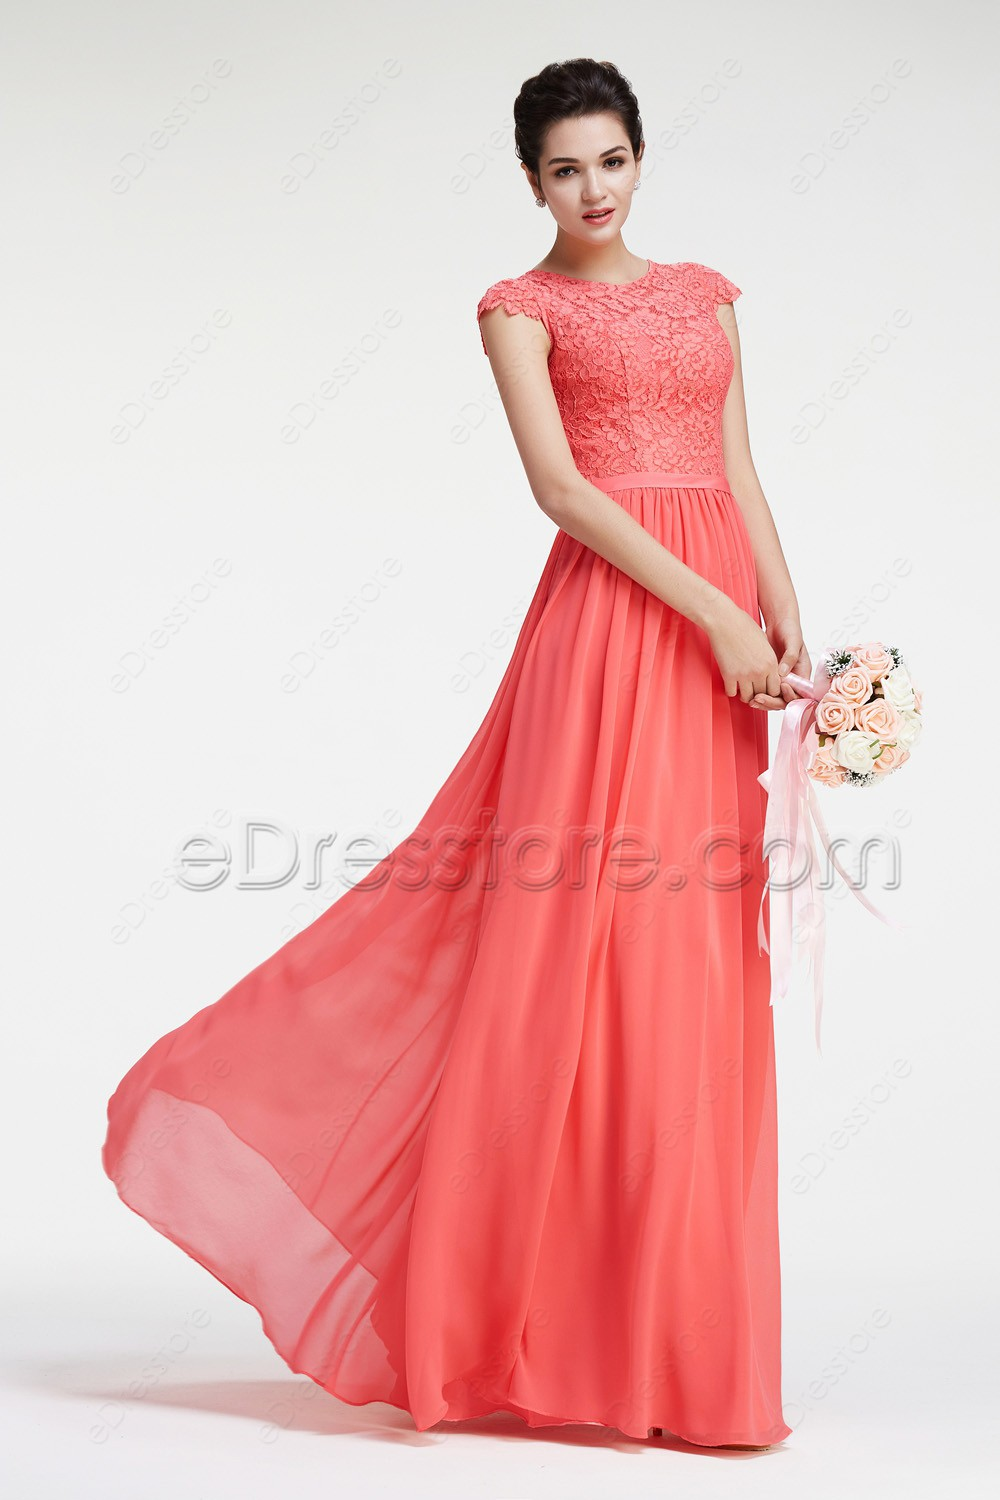 Lace chiffon modest coral bridesmaid dresses cap sleeves for Coral wedding bridesmaid dresses